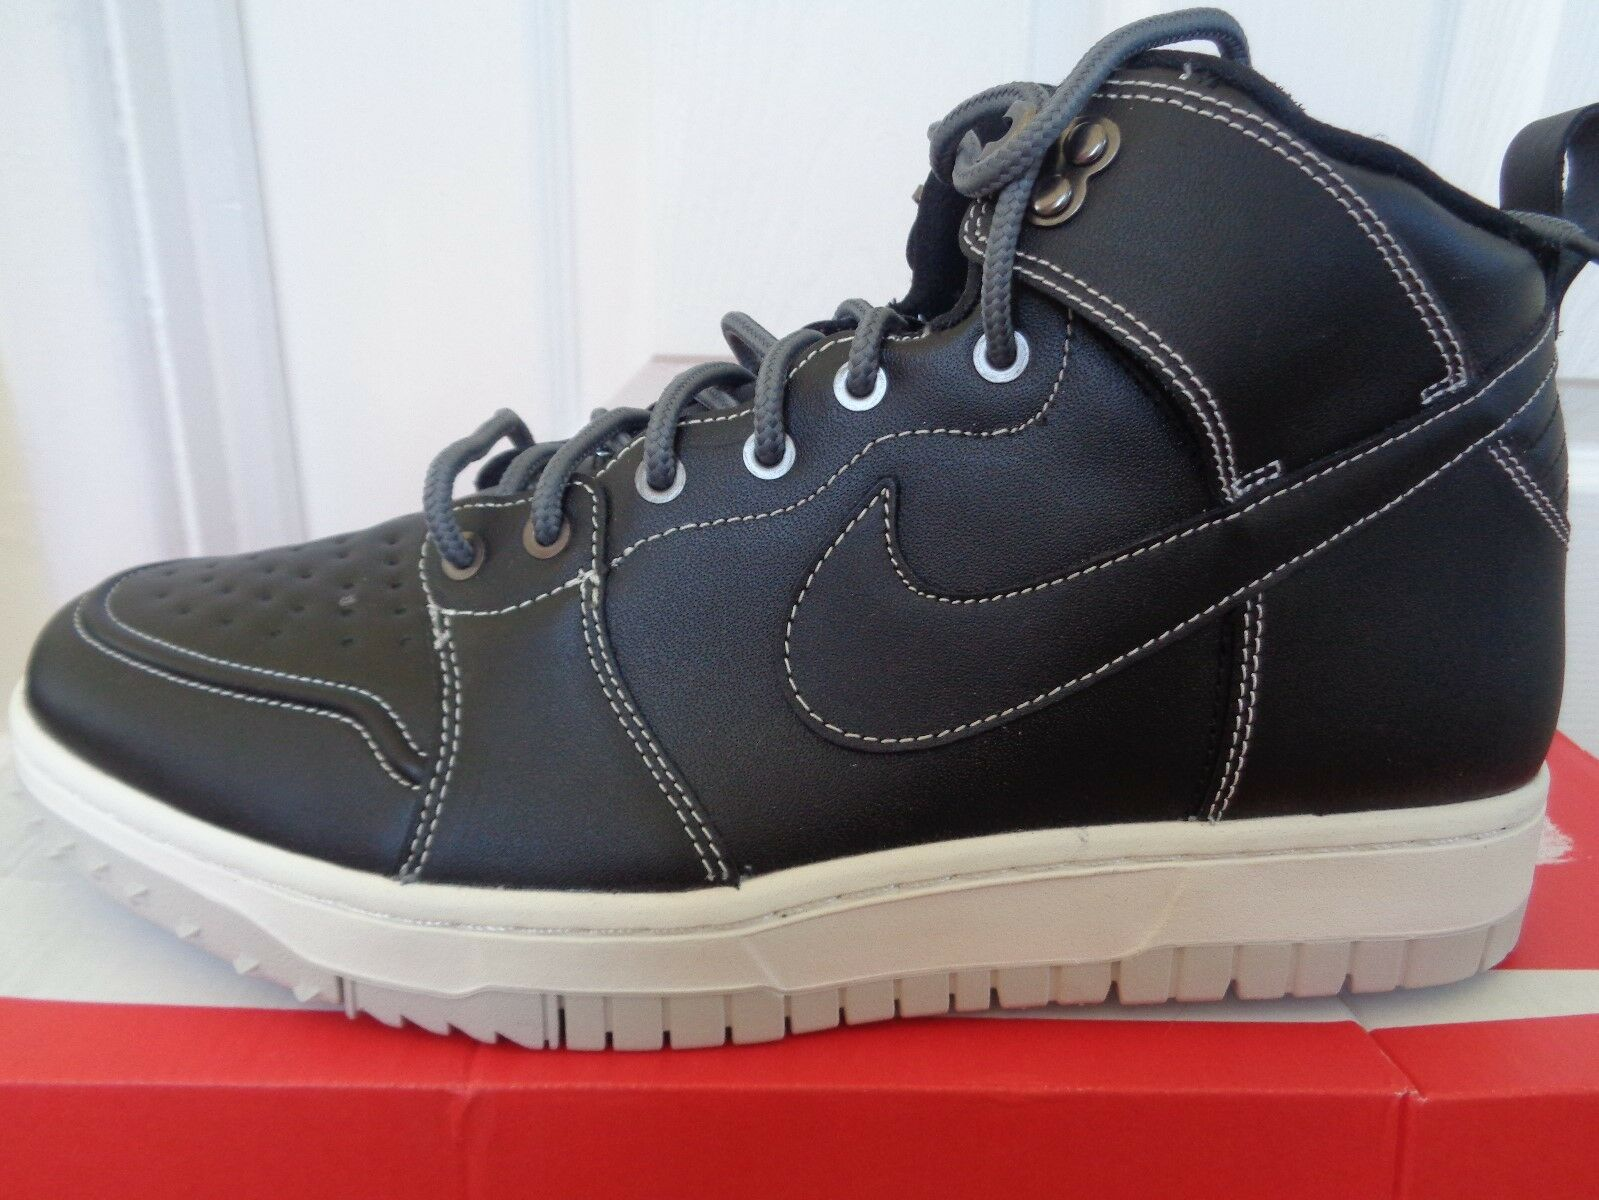 Wild casual shoes Nike Dunk CMFT WB mens boots shoes 805995 001 eu 45 us 11 NEW+BOX